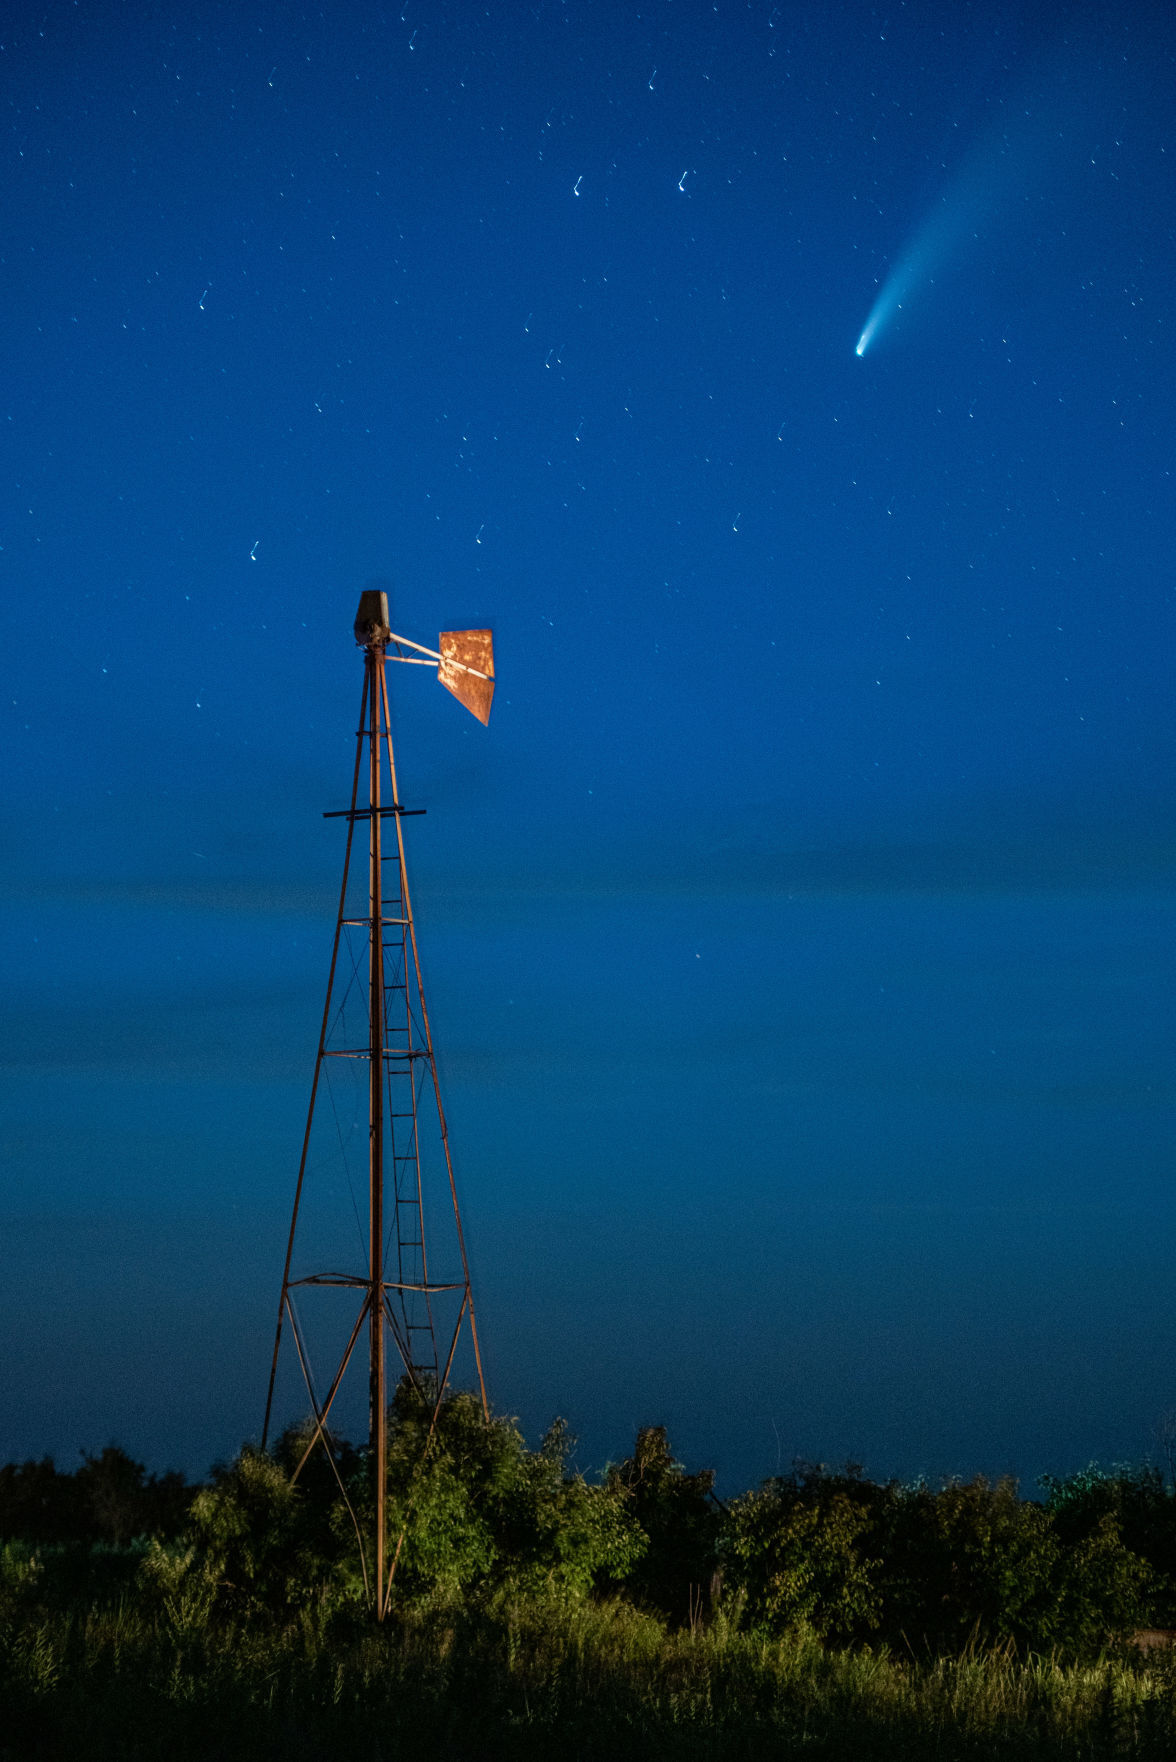 Comet NEOWISE or C/2020 F3 flies above a windmill just north of Highway 16 on Shannon Creek Road at 10:23 p.m. The comet was first identified by the infrared-optimized NEOWISE spacecraft (short for Near-Earth Object Wide-field Infrared Space Explorer) on March 27, 2020 and will be visible to the naked eye until the end of July 2020. Comet NEOWISE can be found under the Big Dipper when looking in the Northwest direction. Comet NEOWISE is traveling at a speed of 17,500 miles per hour and wonÕt be visible for another 6,800 years.